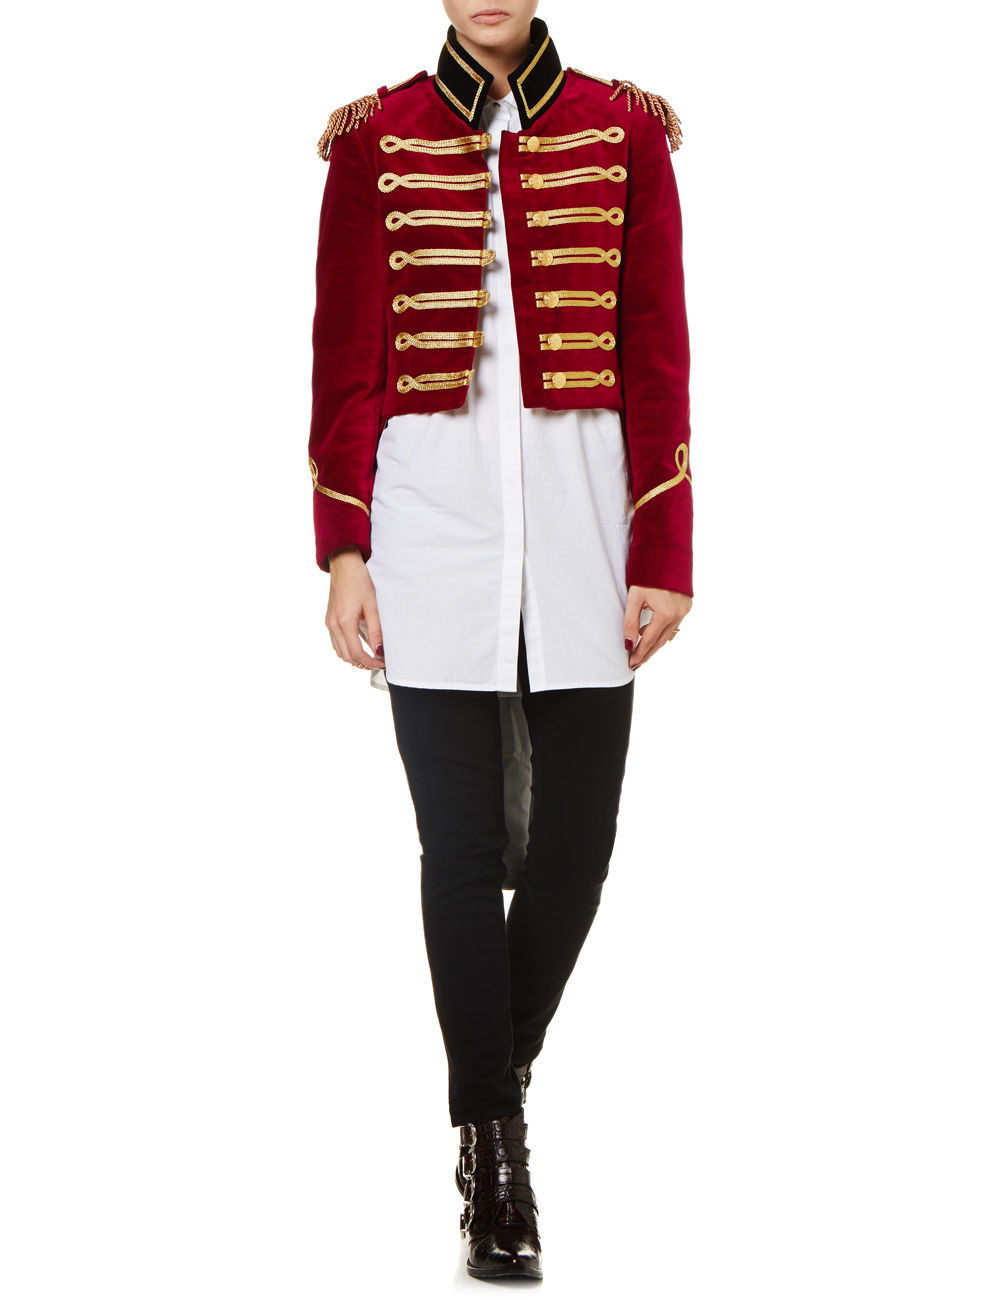 Pinky Laing Burgundy Velvet Military Tailcoat Jacket In